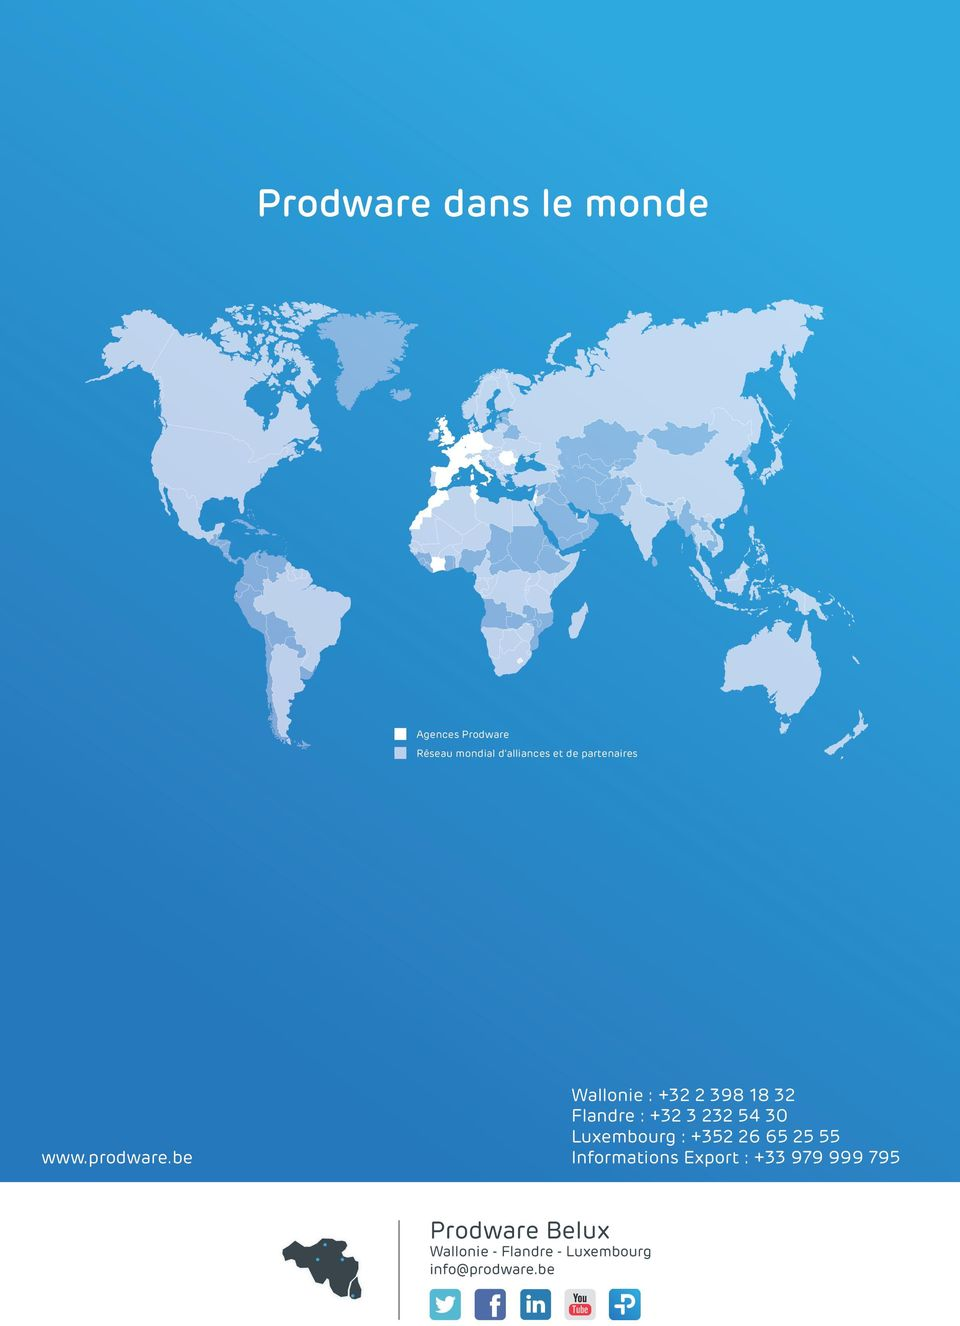 Luxembourg : +352 26 65 25 55 www.prodware.